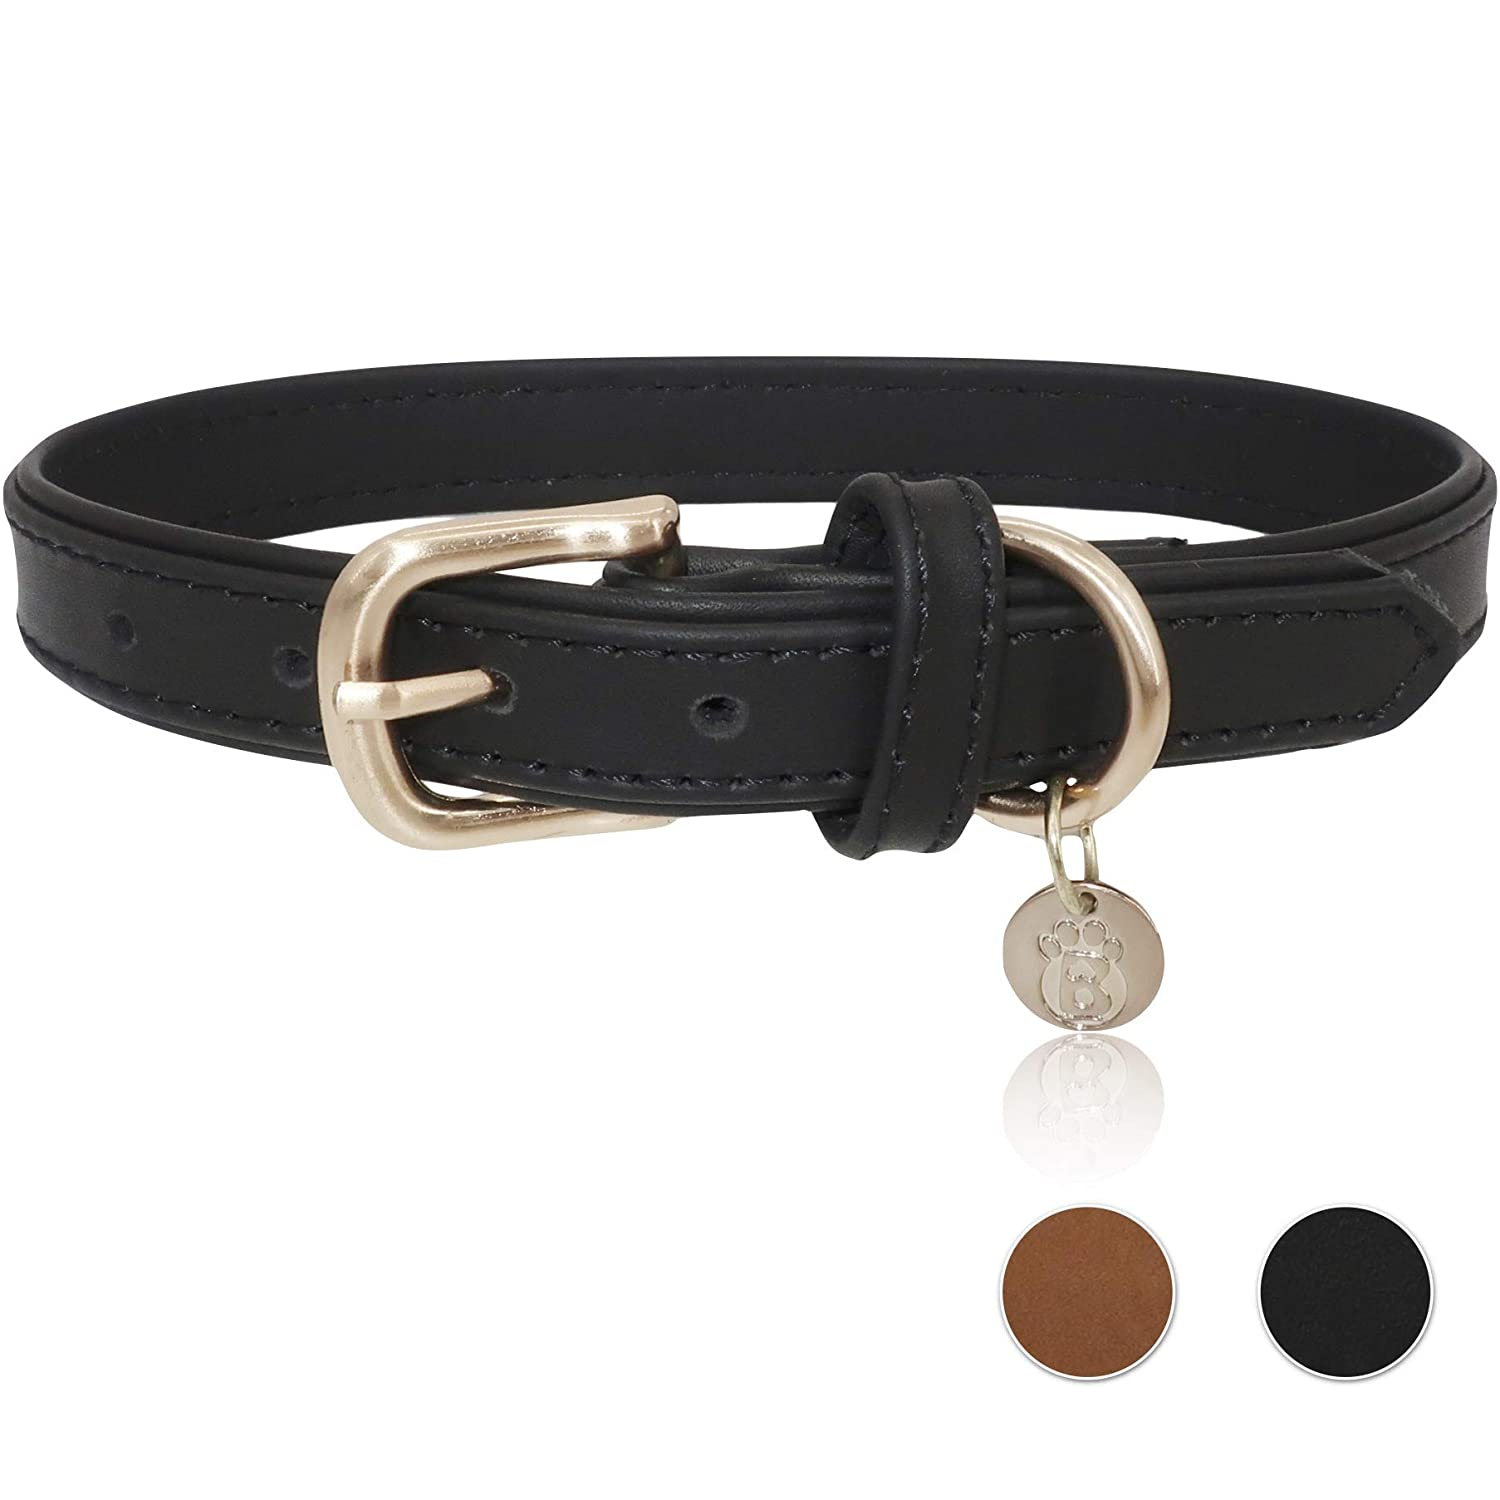 Black Large Black Large BARKBAY Soft Touch Genuine Leather Collar Luxury Real Leather Collar for Large Dog